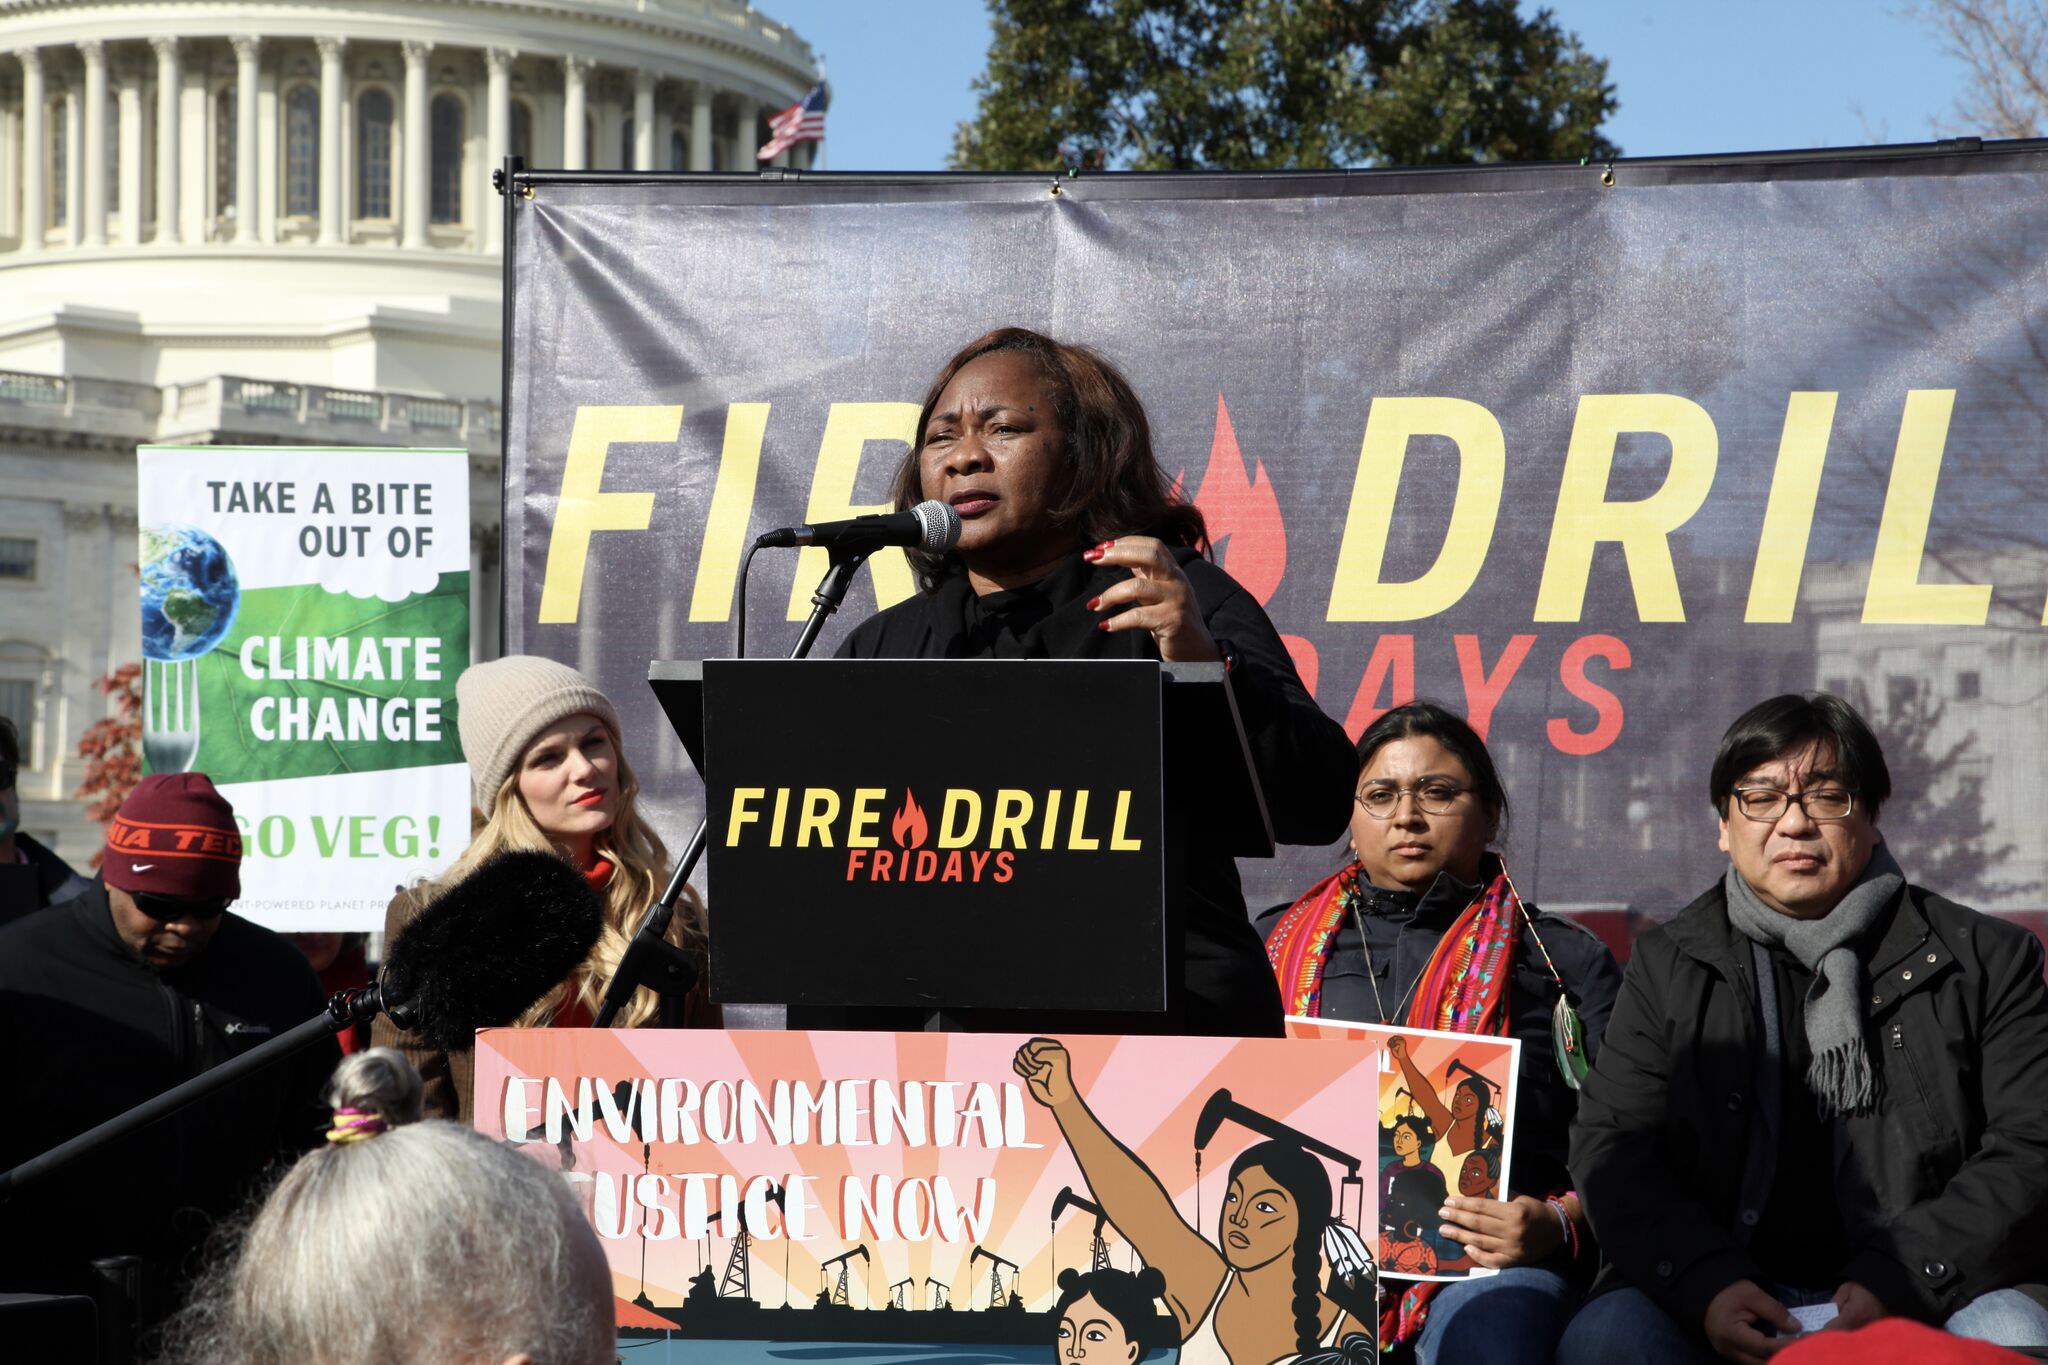 Catherine Coleman Flowers speaks at Fire Drill Friday protest in Washington, D.C.